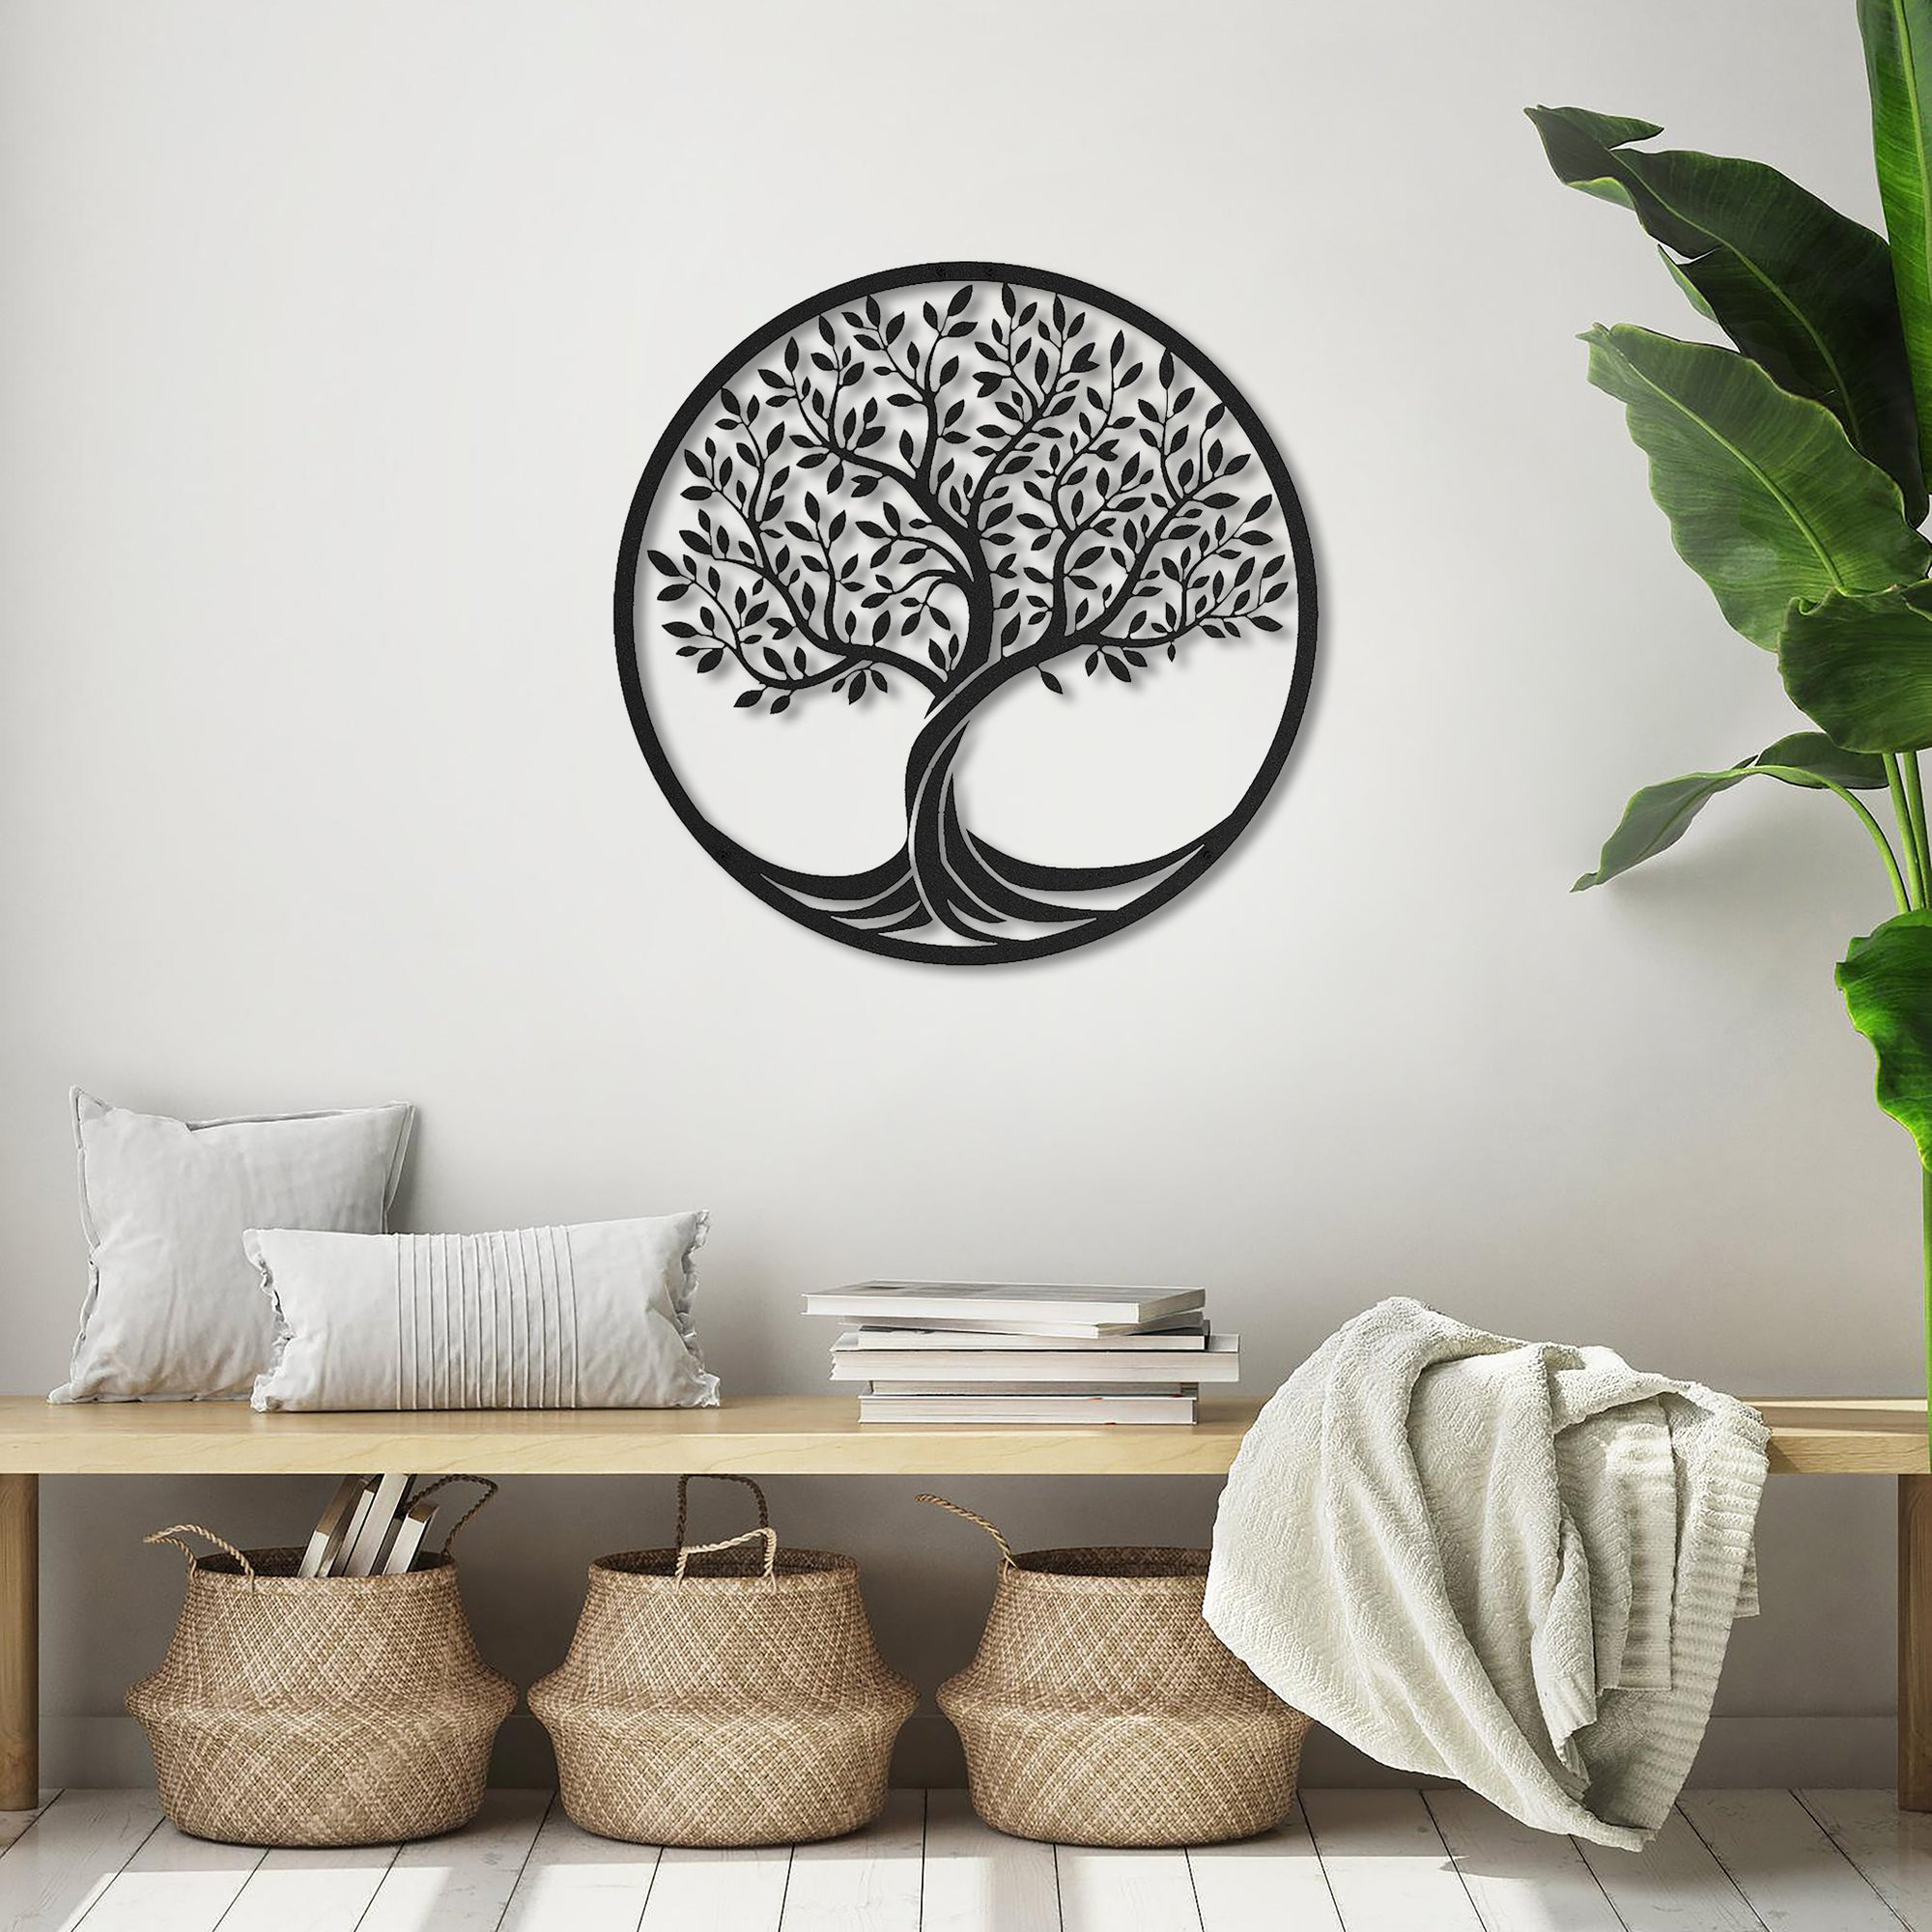 TREE OF LIFE - METAL WALL ART